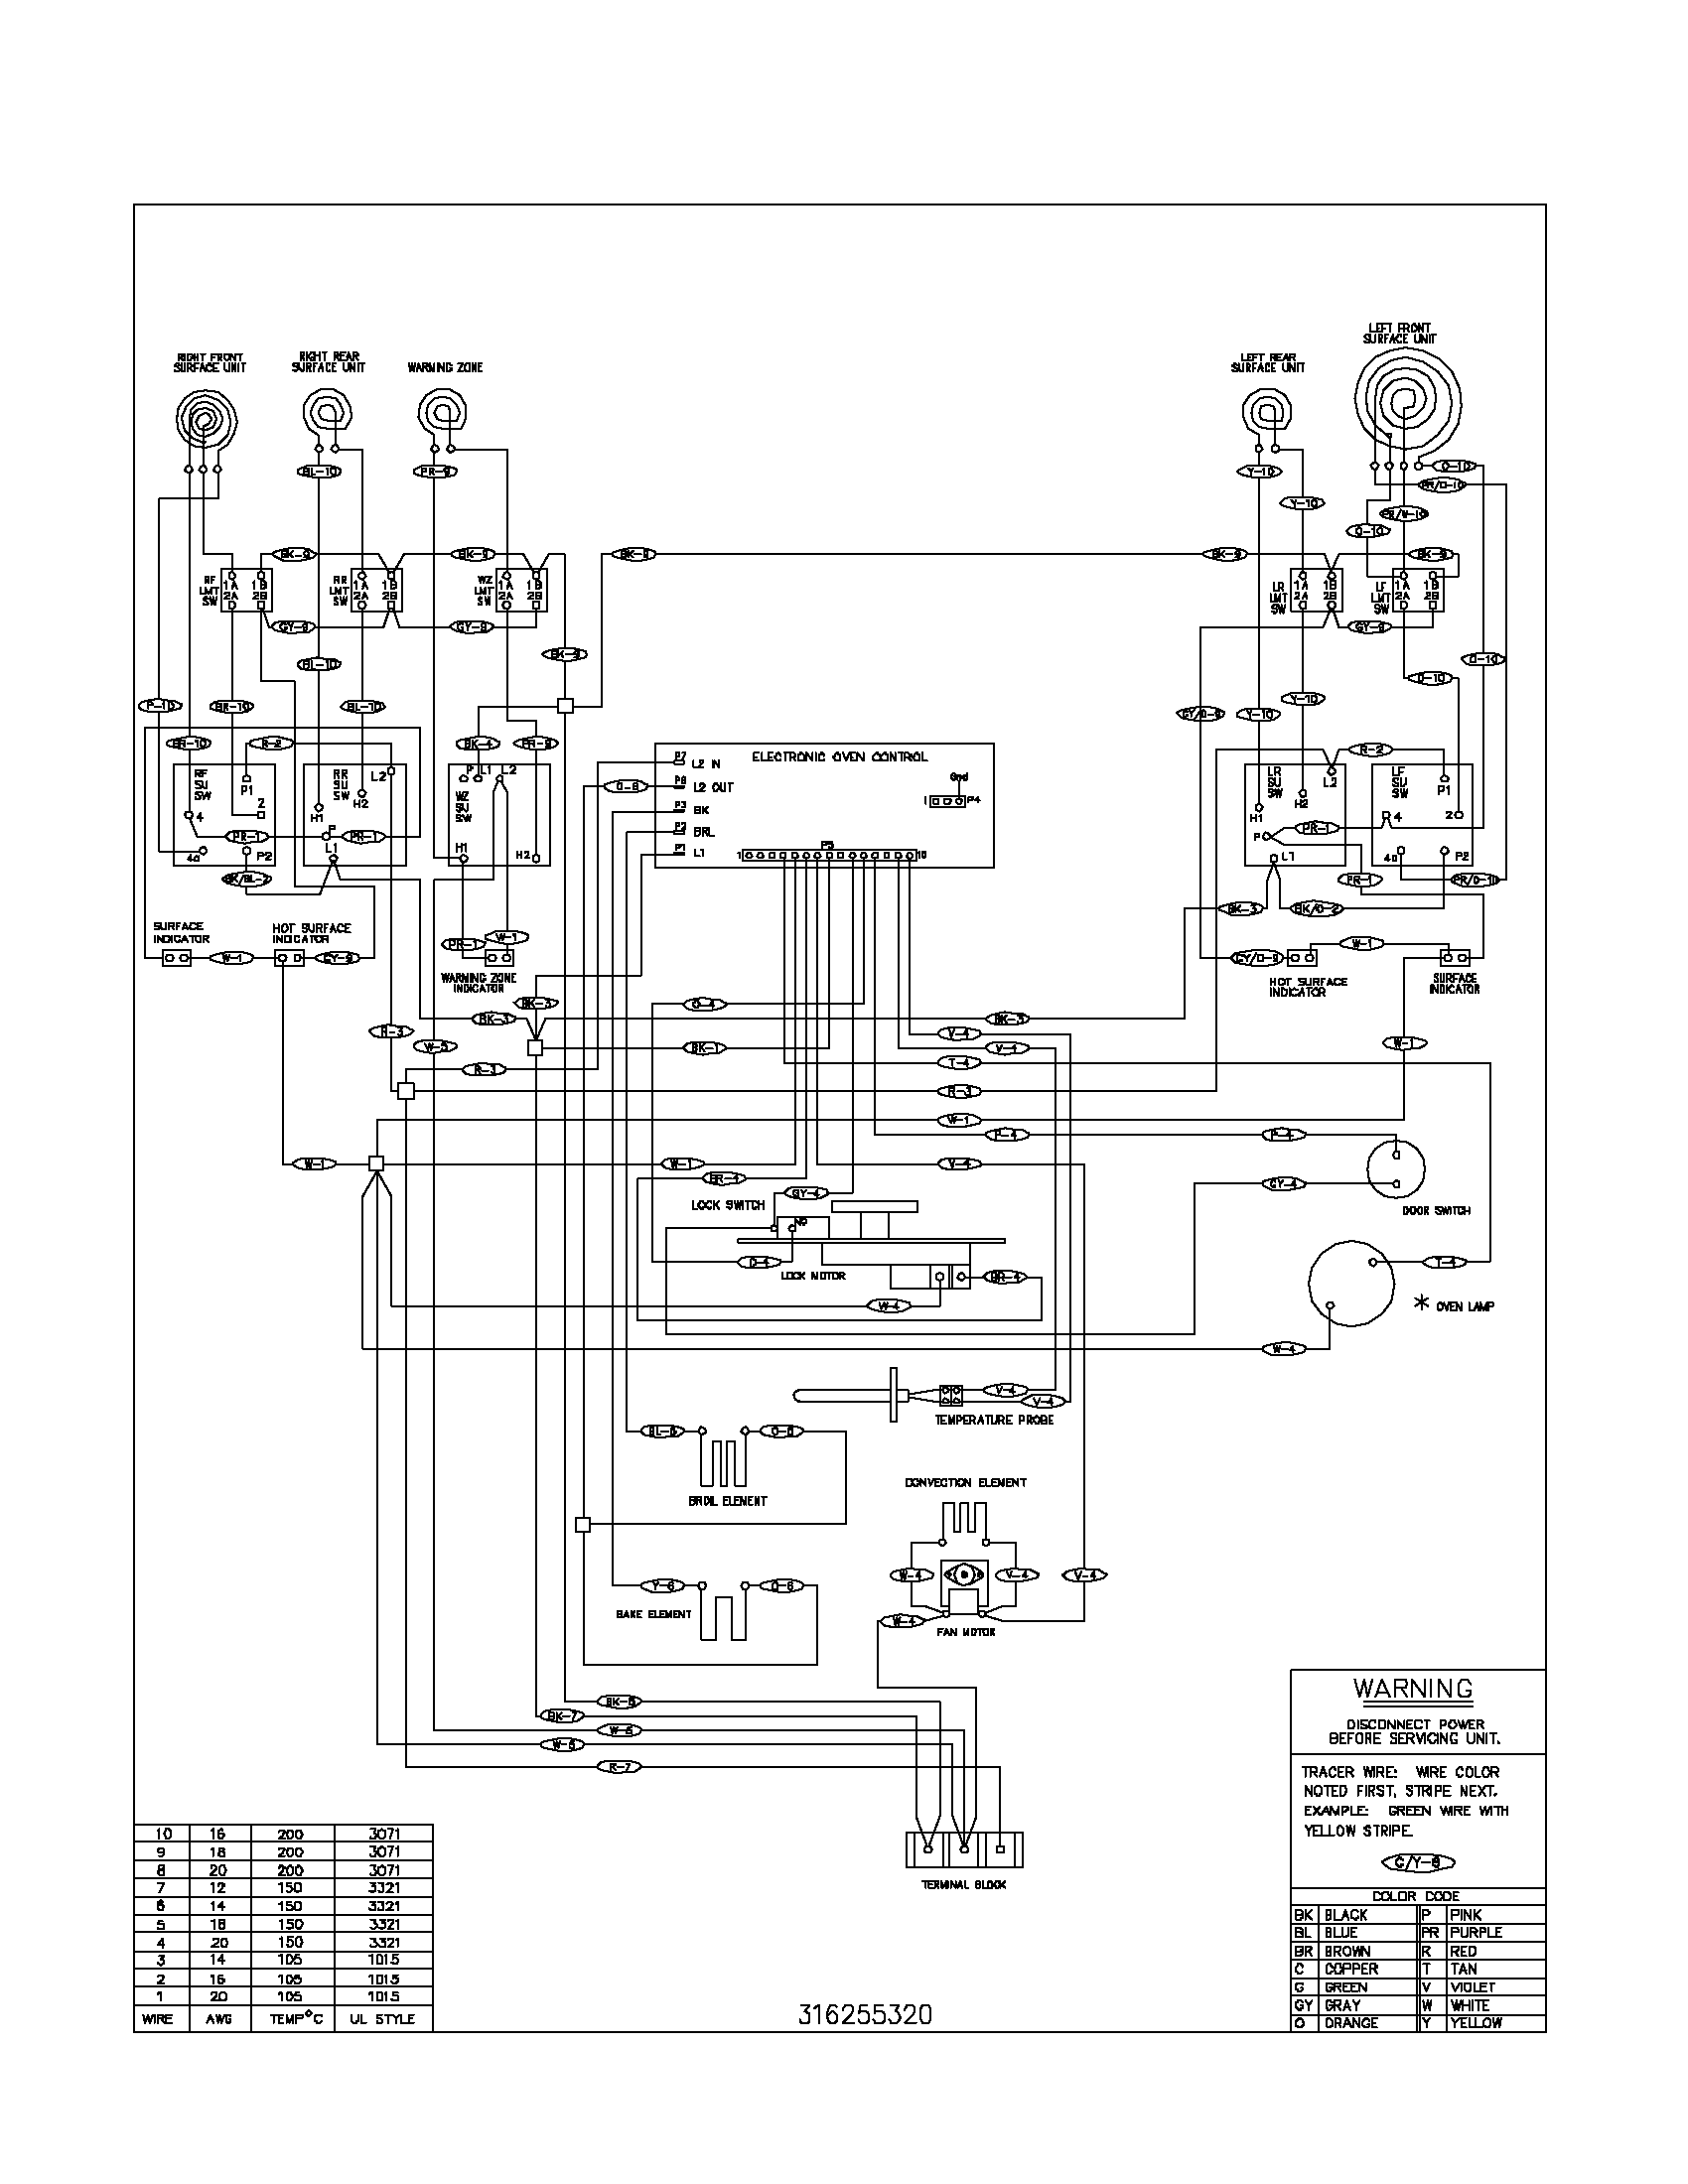 fefl88acc electric range wiring diagram parts diagram